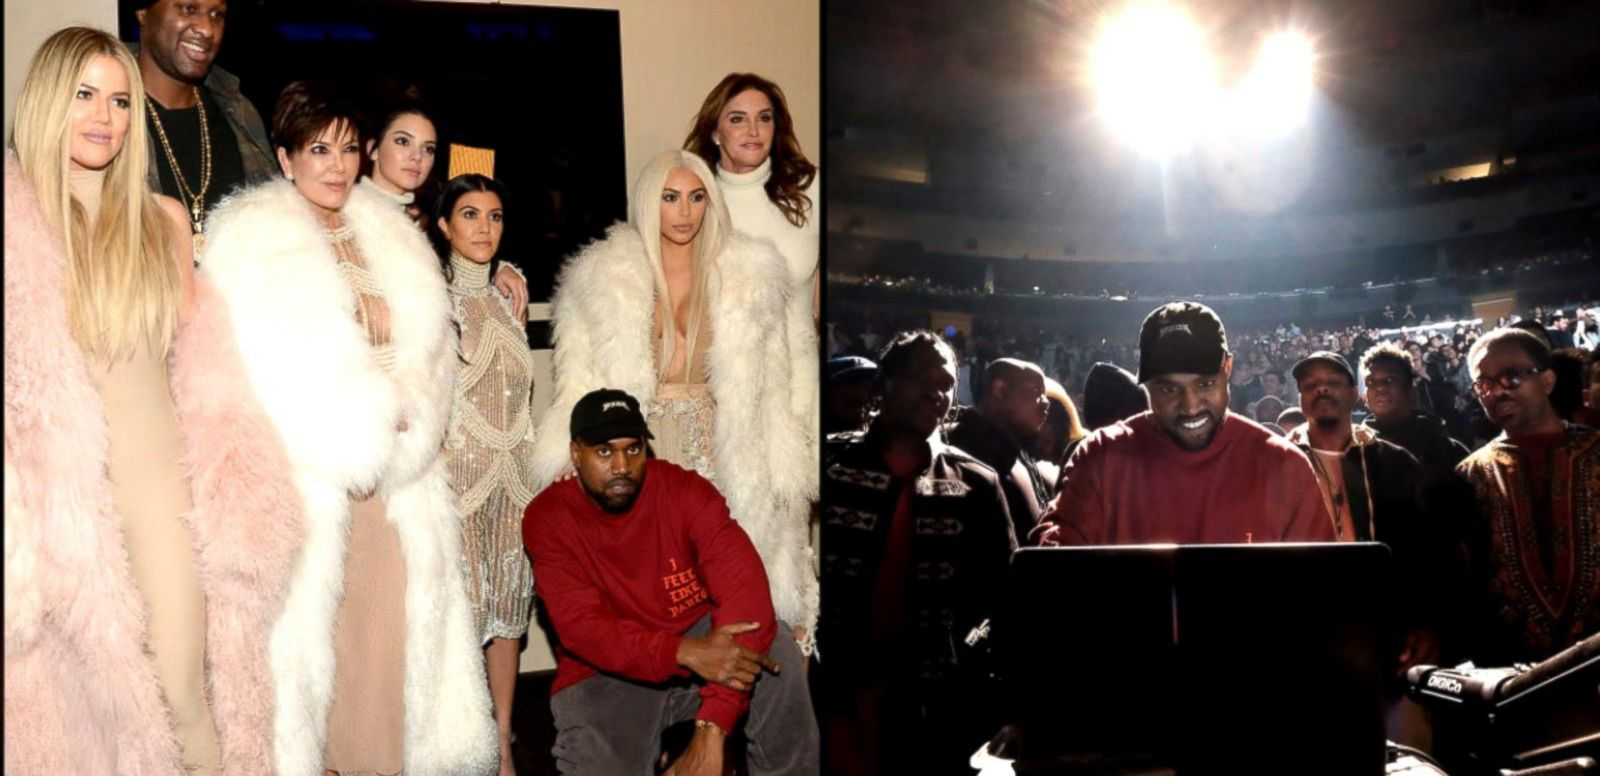 VIDEO: Lamar Odom Steps Out for Kanye West's Album Launch